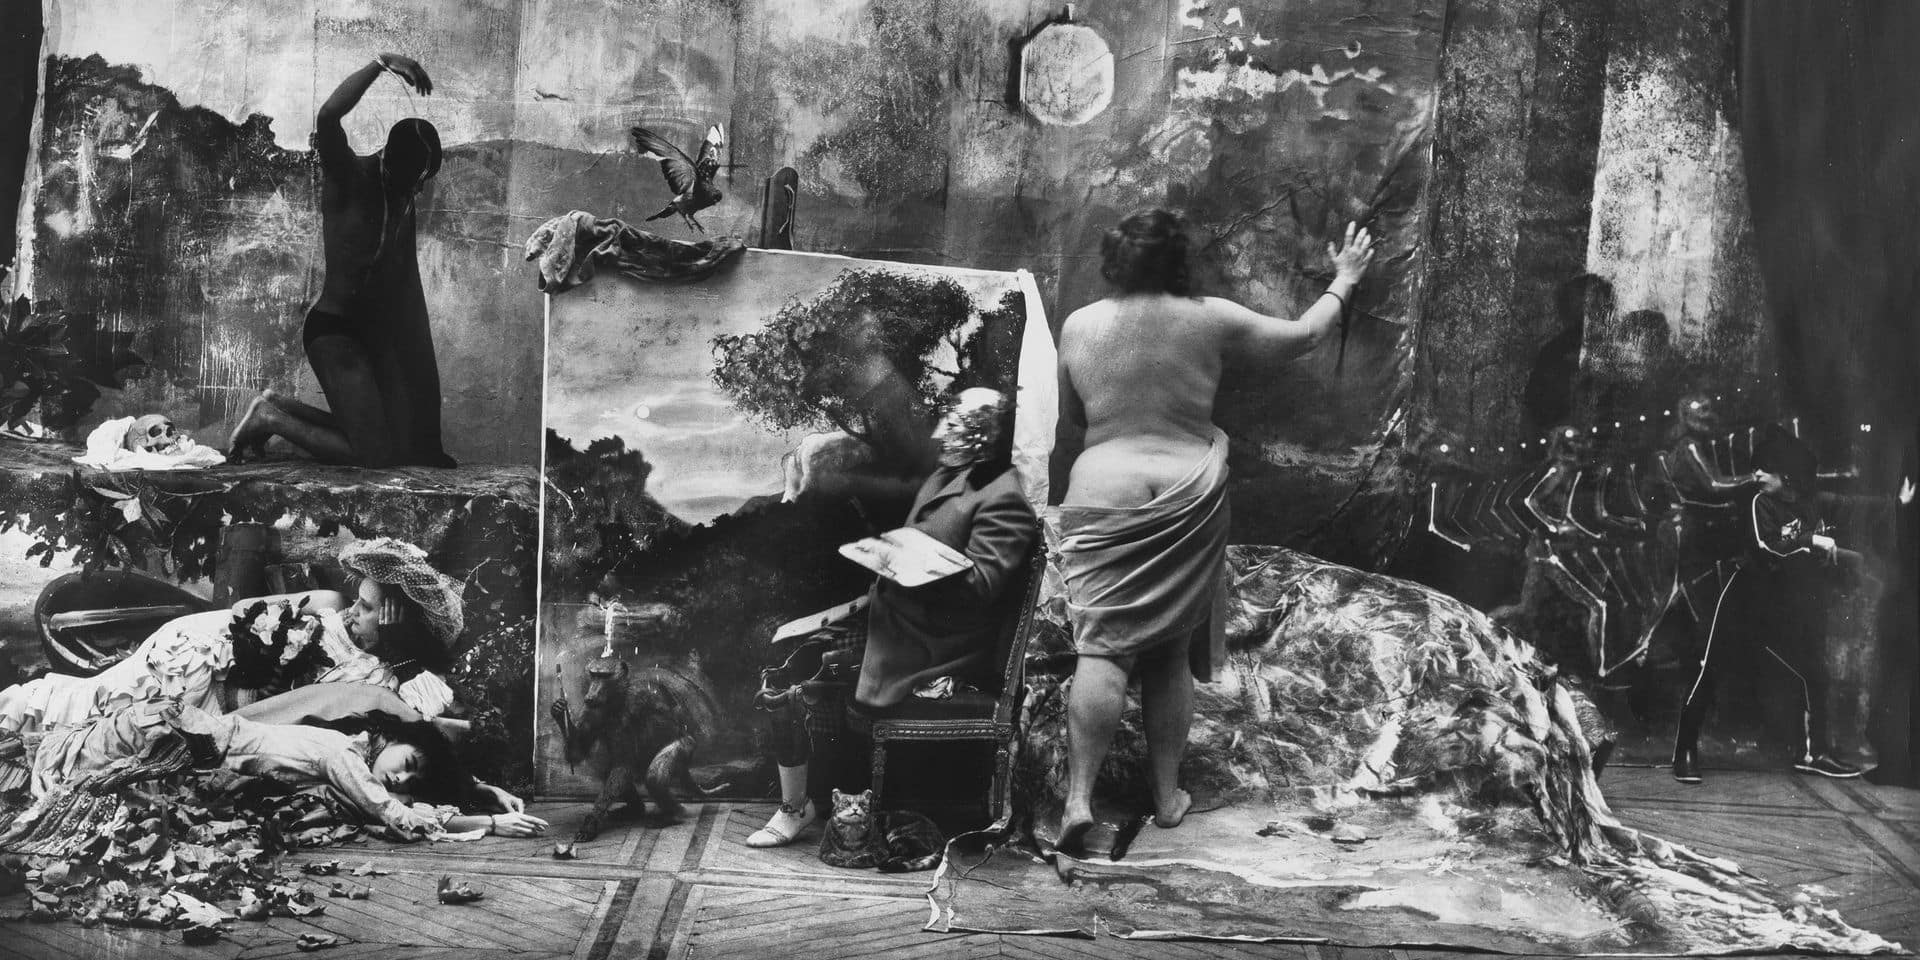 Joel-Peter Witkin at the Charleroi Museum: the photographer's easel